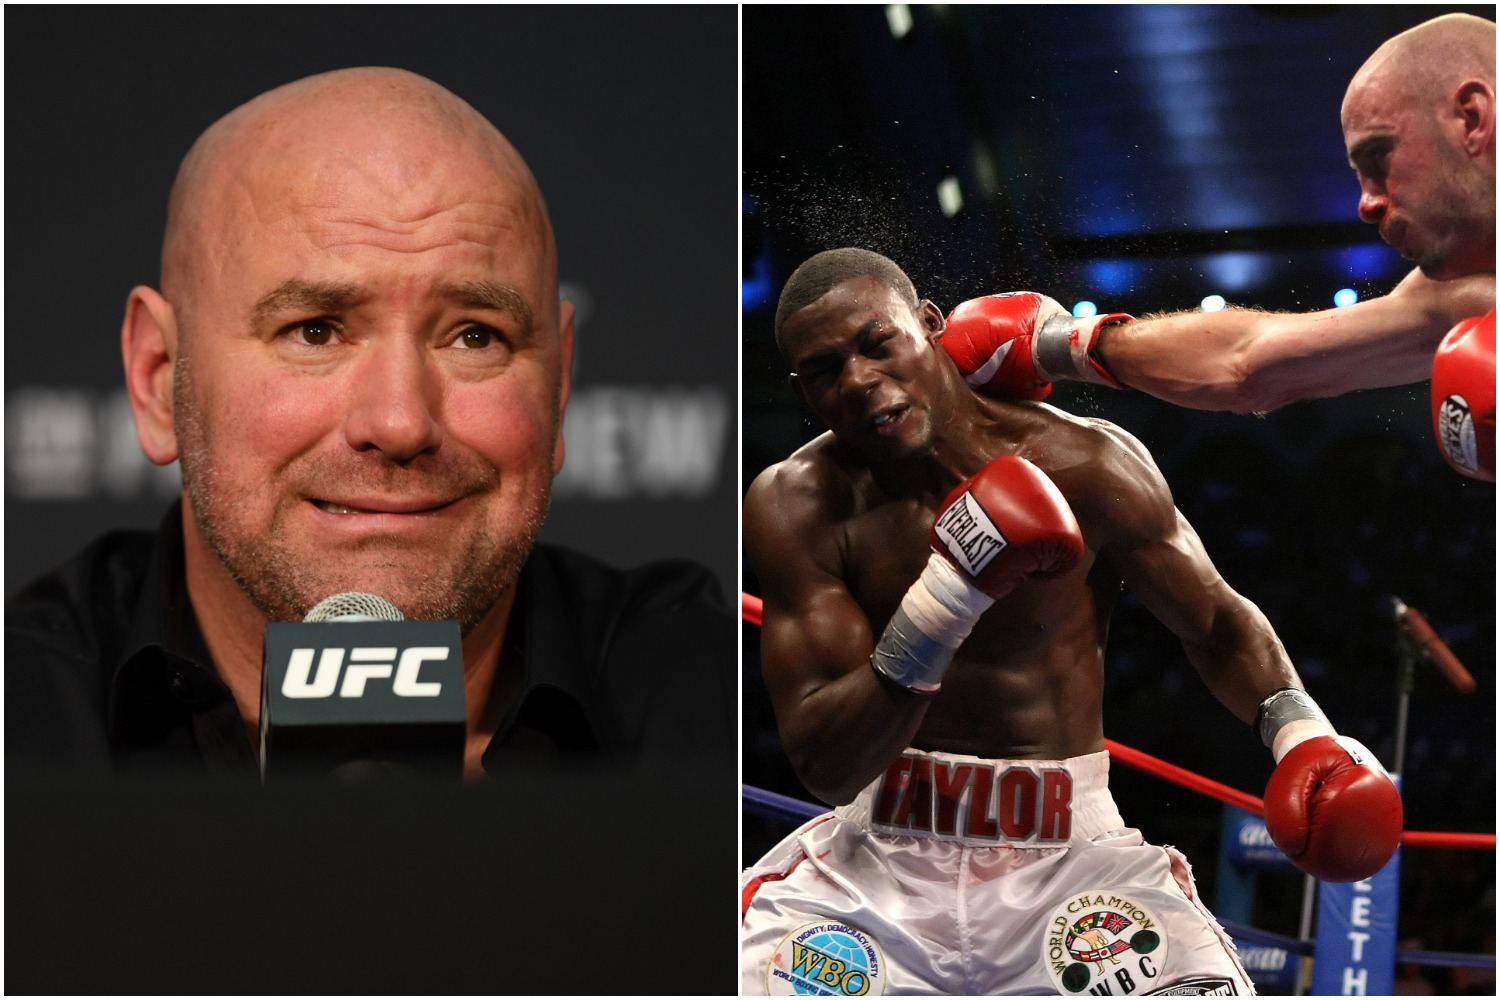 Dana White is Missing $1 Million Because of Former Boxing Star Jermain Taylor